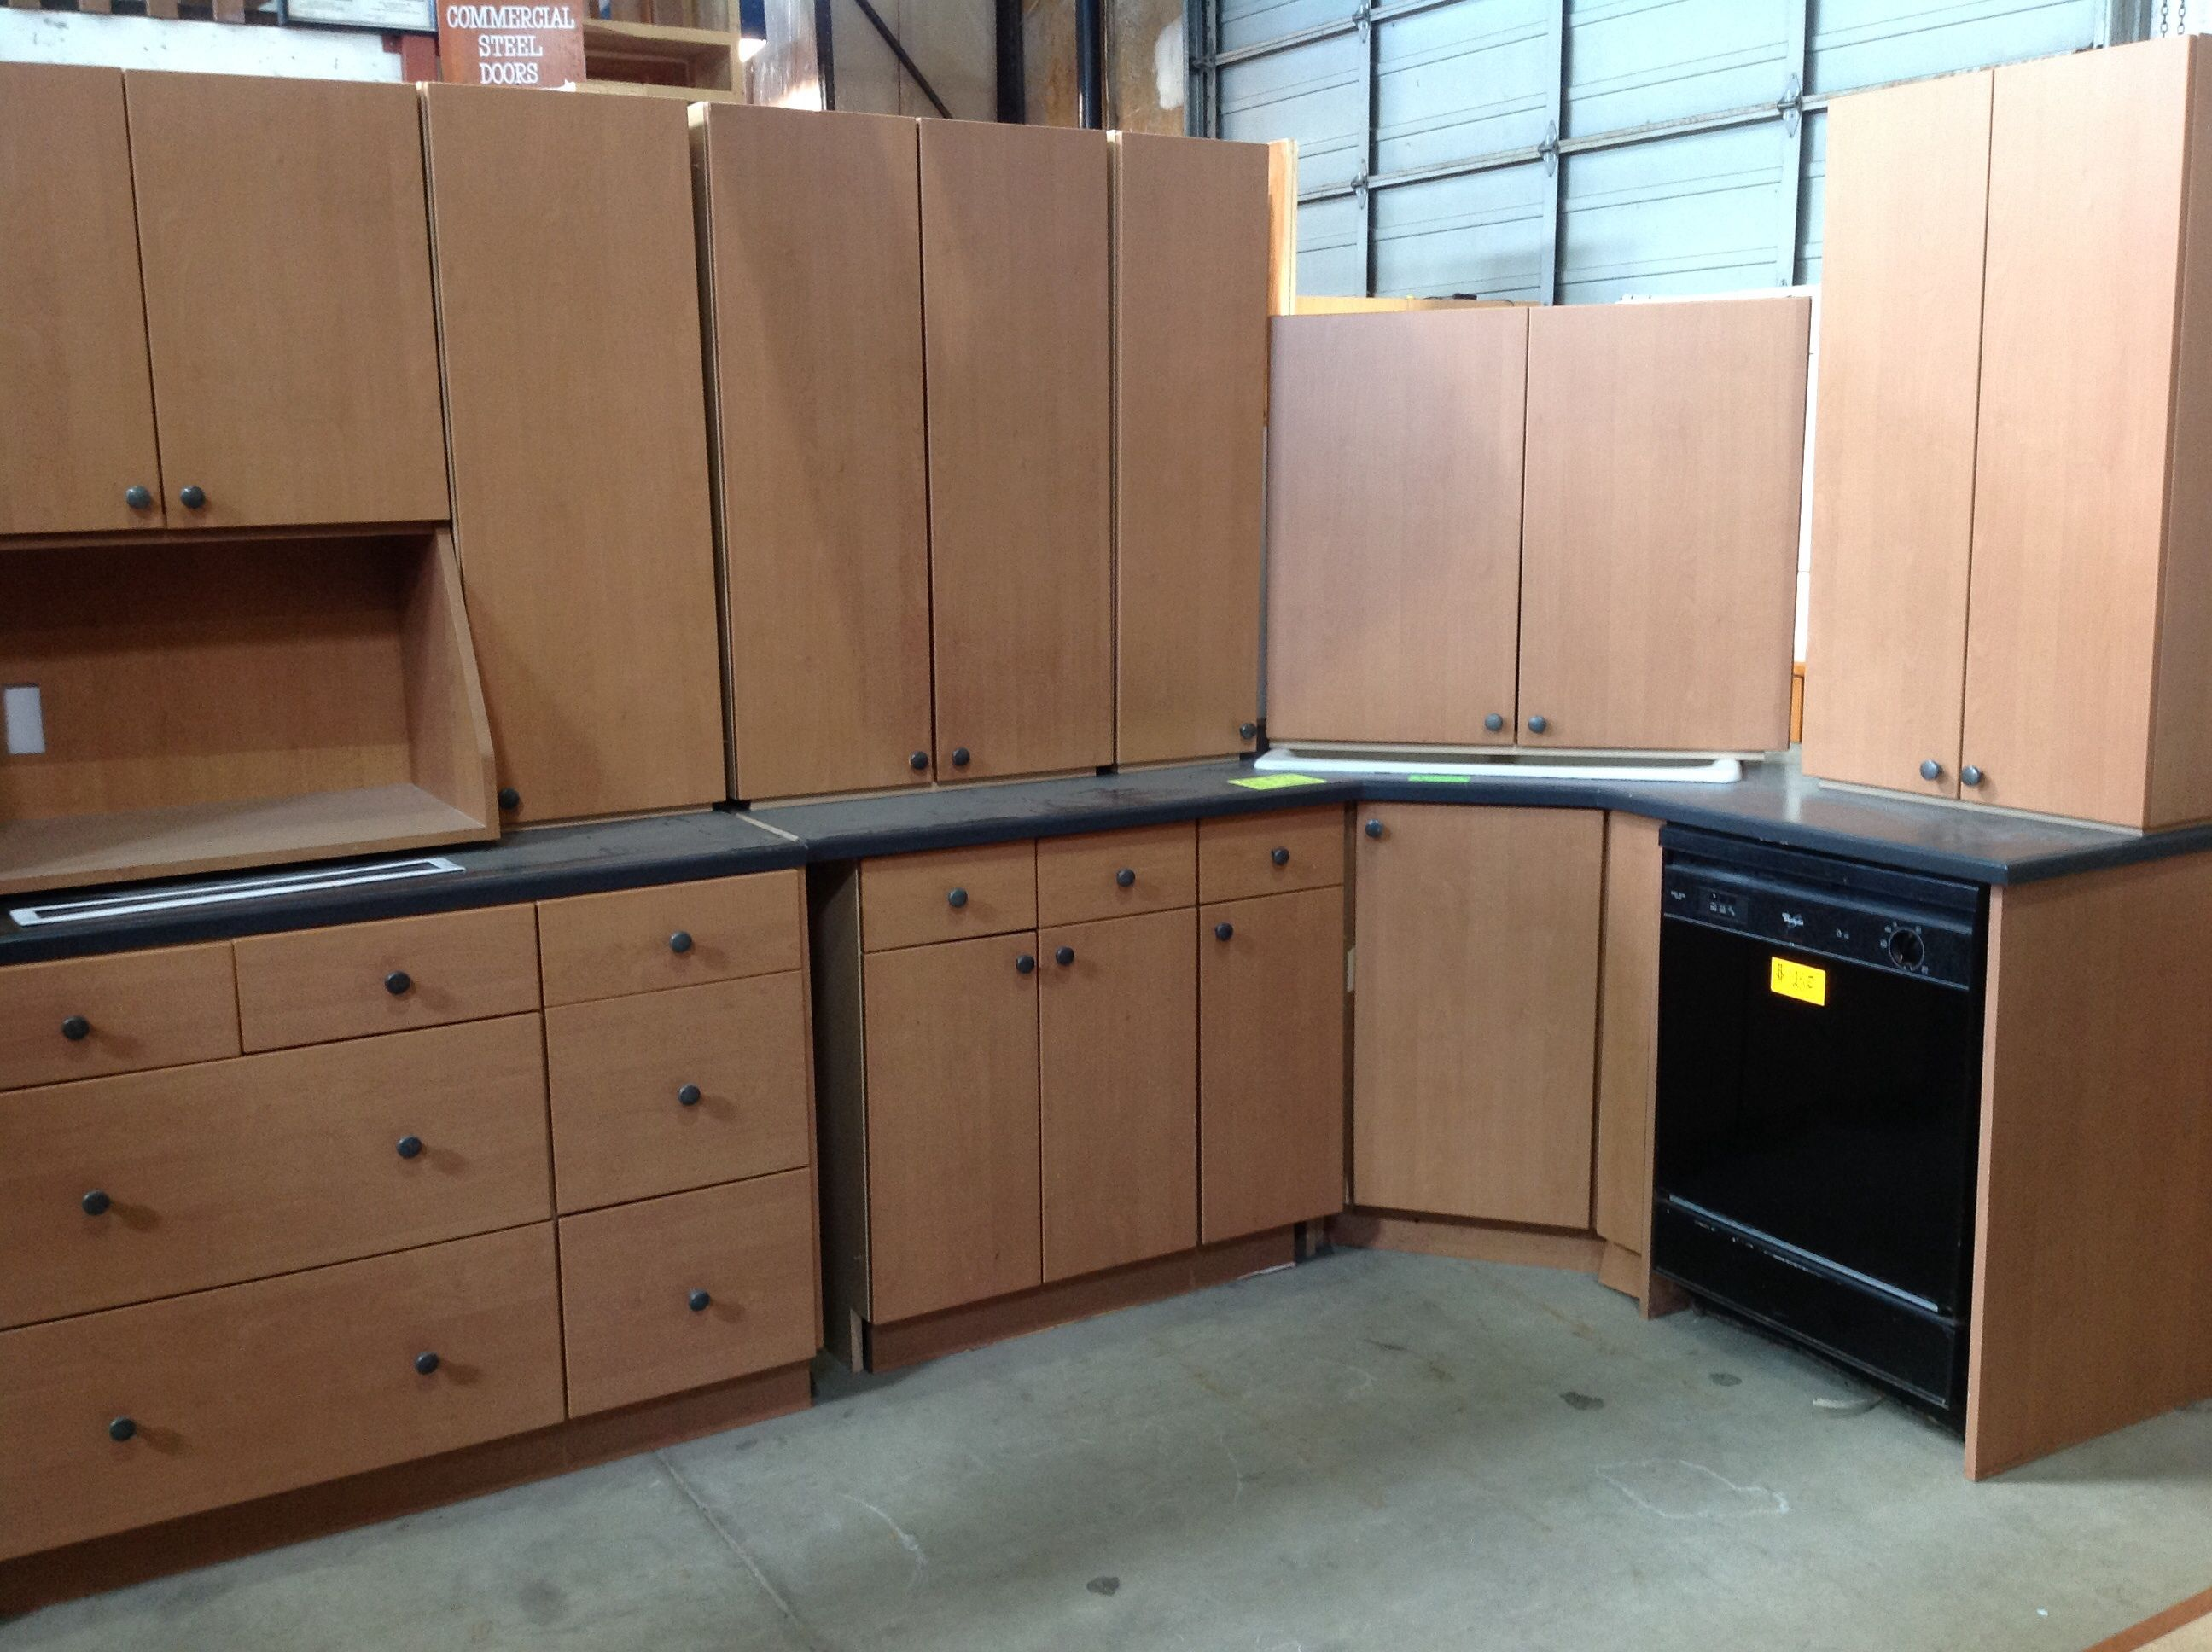 Used Kitchen Cabinets Chilliwack New And Used Building Materials Inc Kitchen Cabinets Used Kitchen Cabinets Window Handles